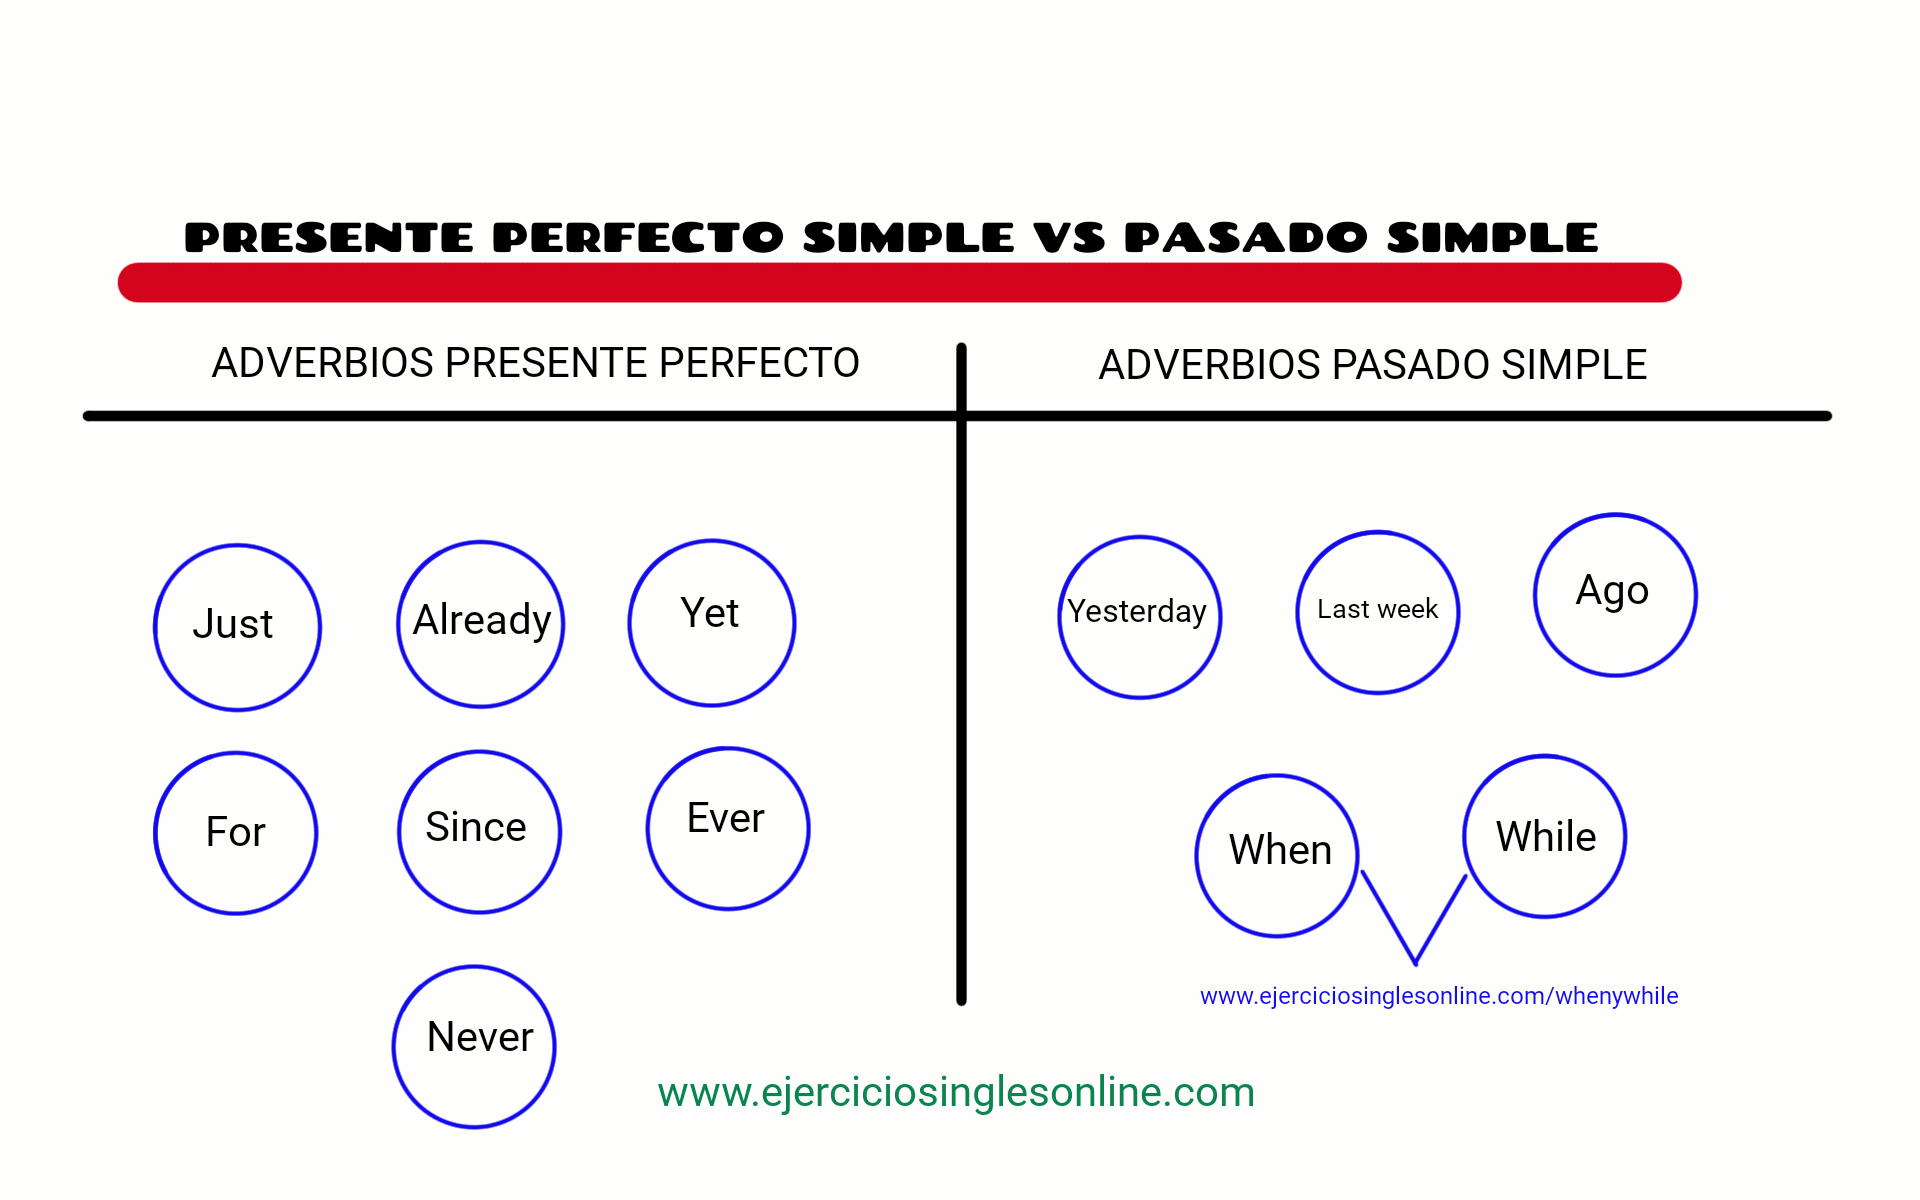 Presente Perfecto Simple